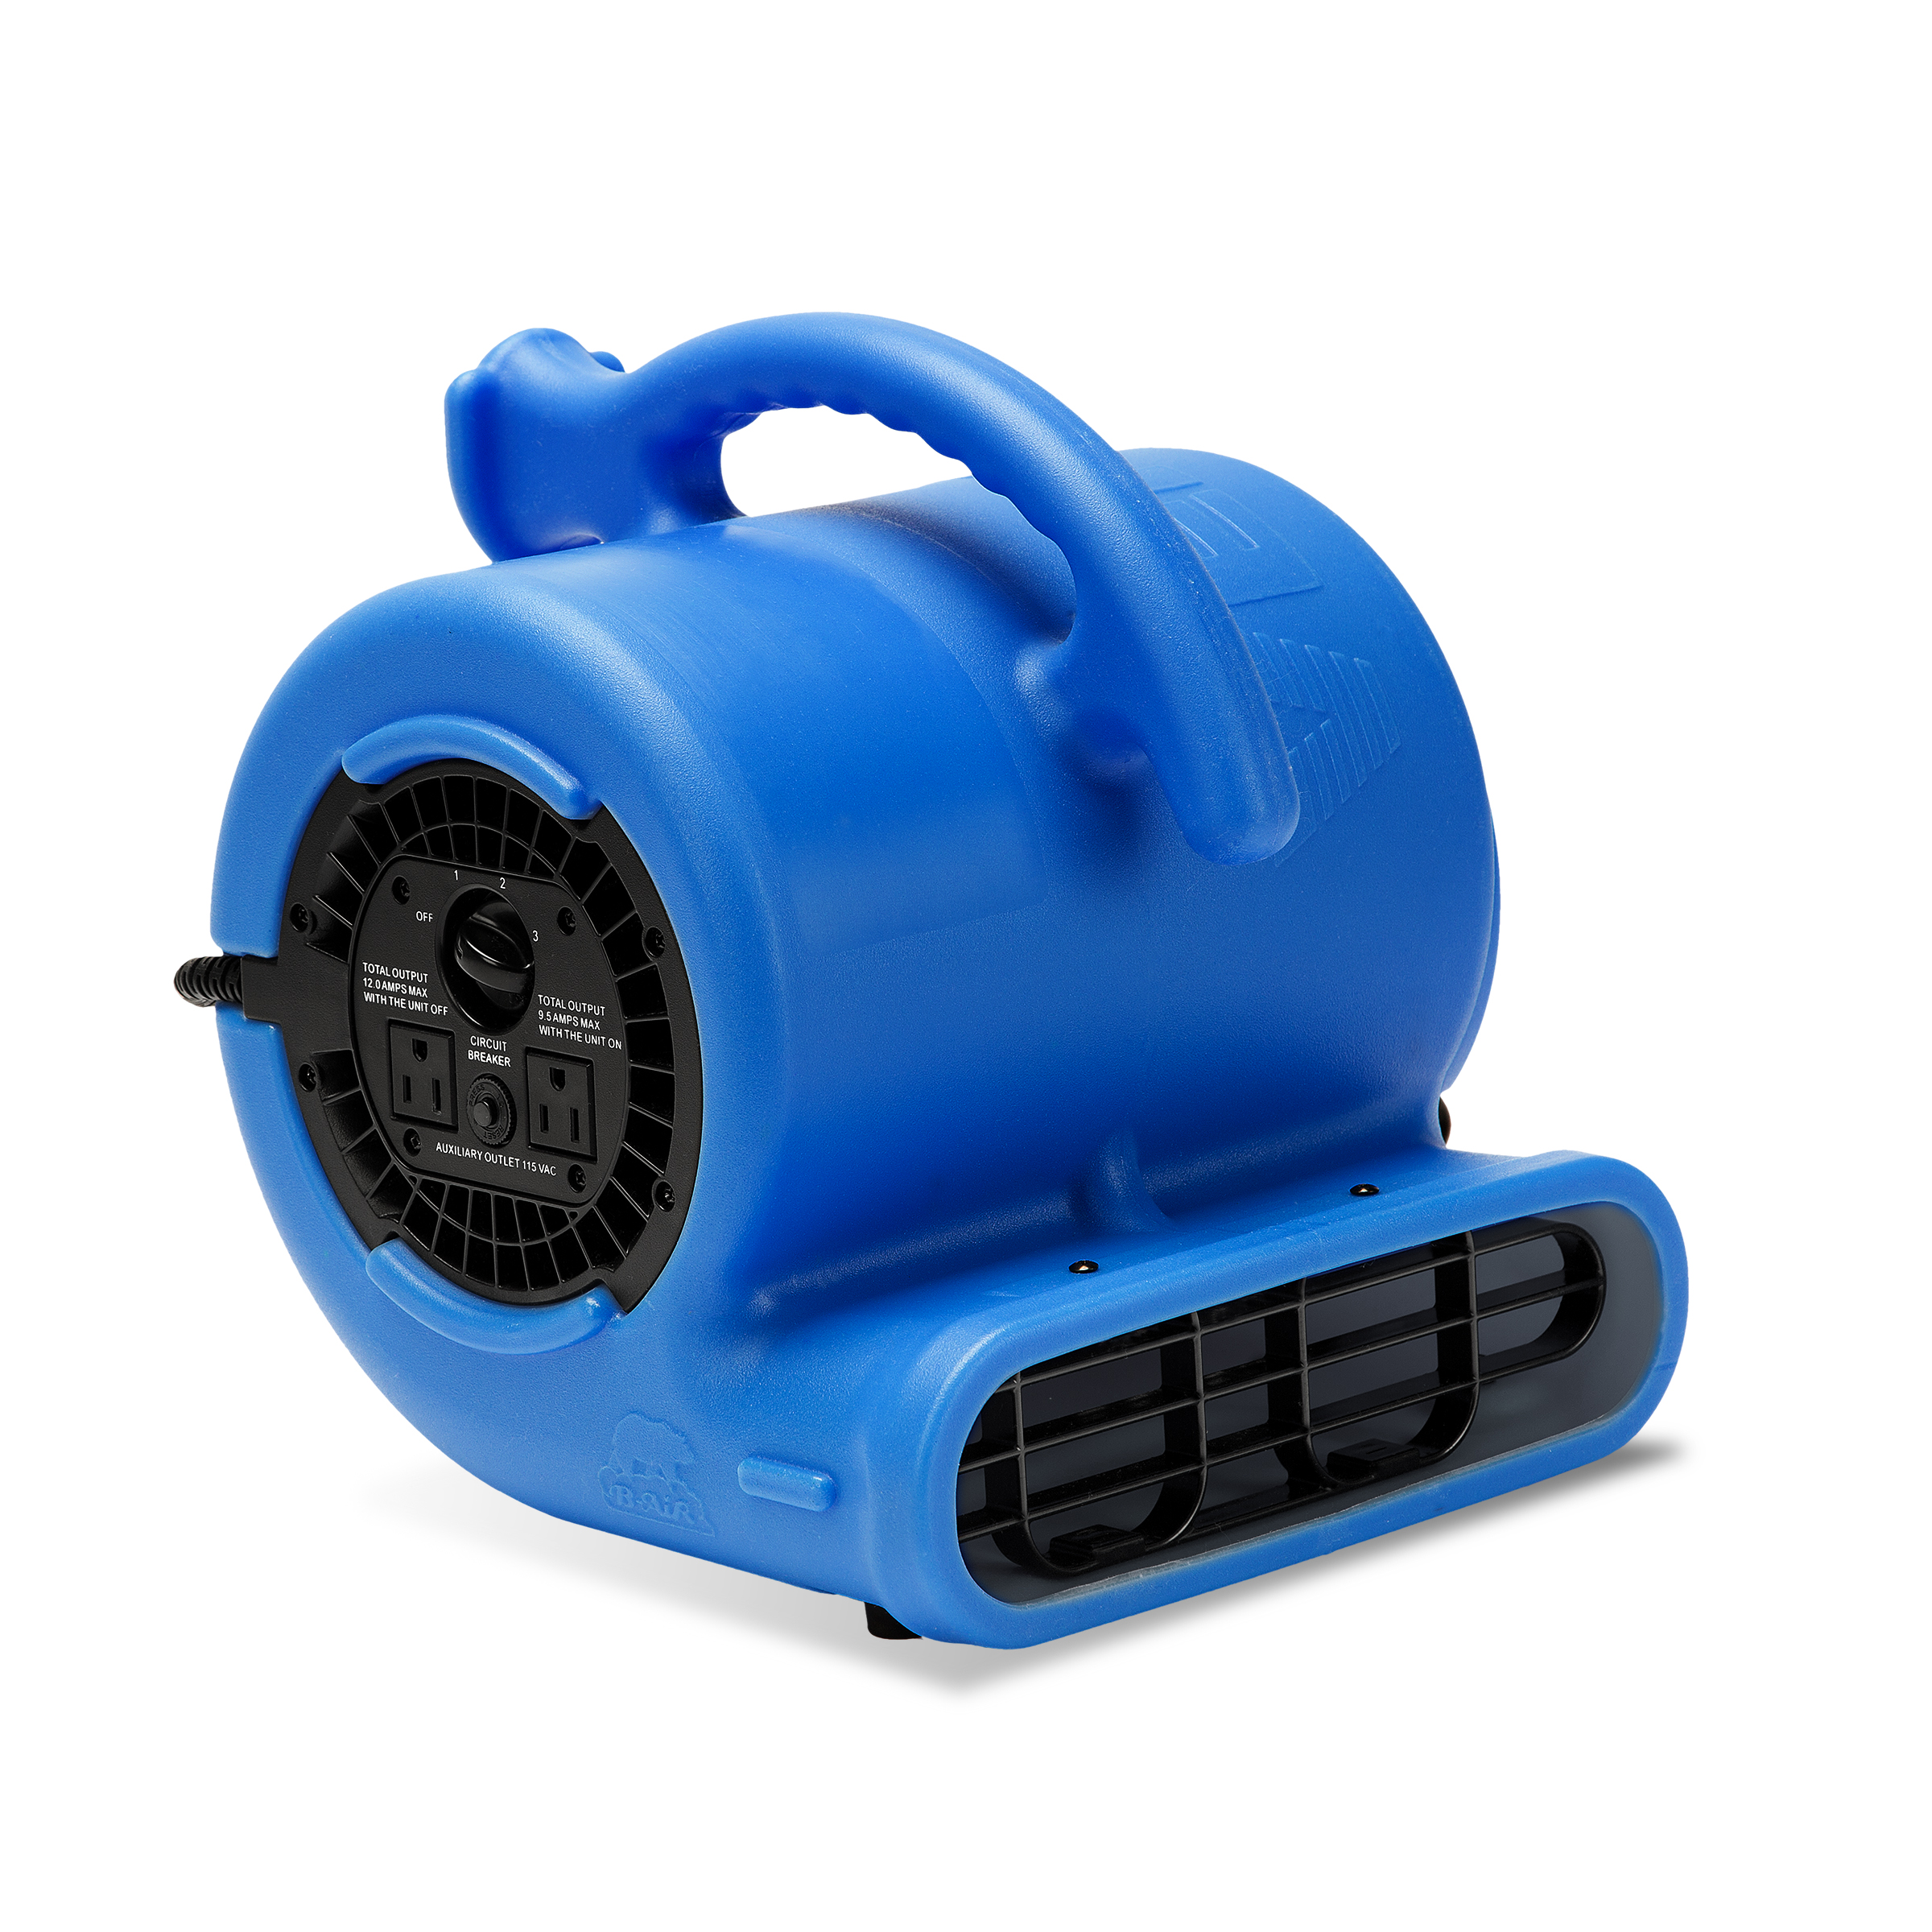 B-Air VP-25 1/4 HP Mover for Water Damage Restoration Carpet Dryer Floor Blower Fan Home and Plumbing Use, Blue